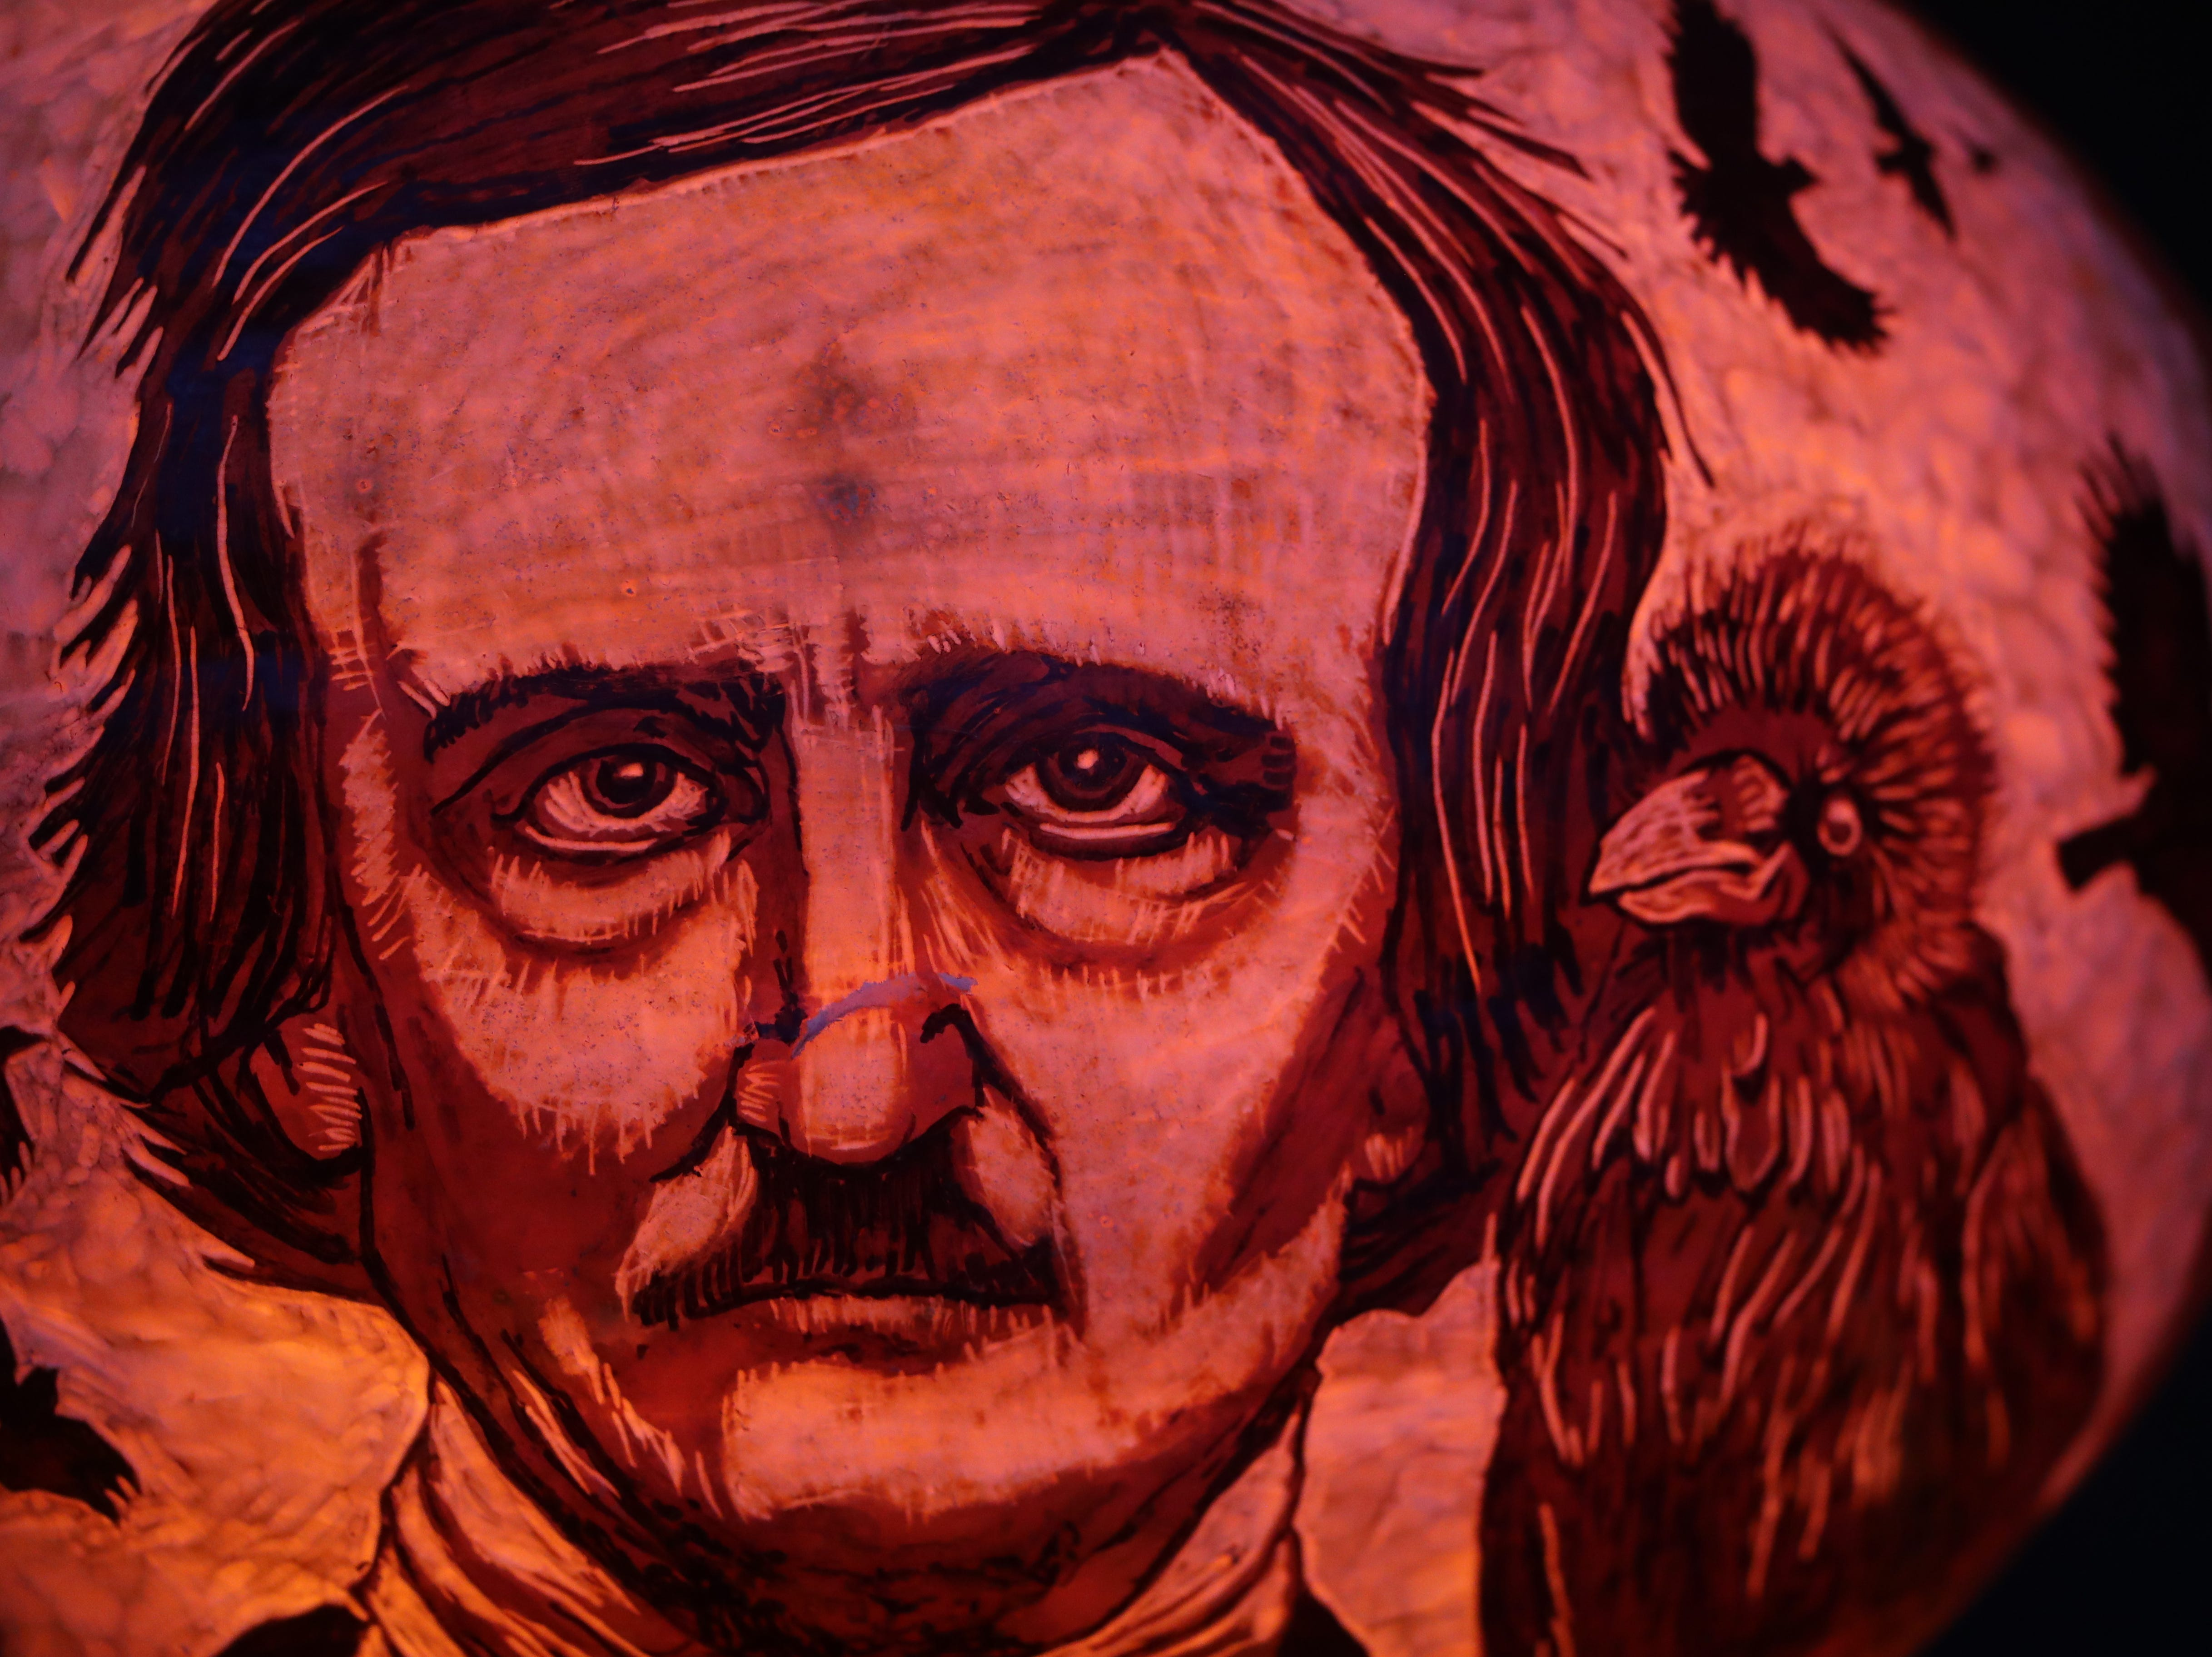 Edgar Allen Poe appears on a pumpkin at this year's Jack O' Lantern Spectacular. Oct. 9, 2018